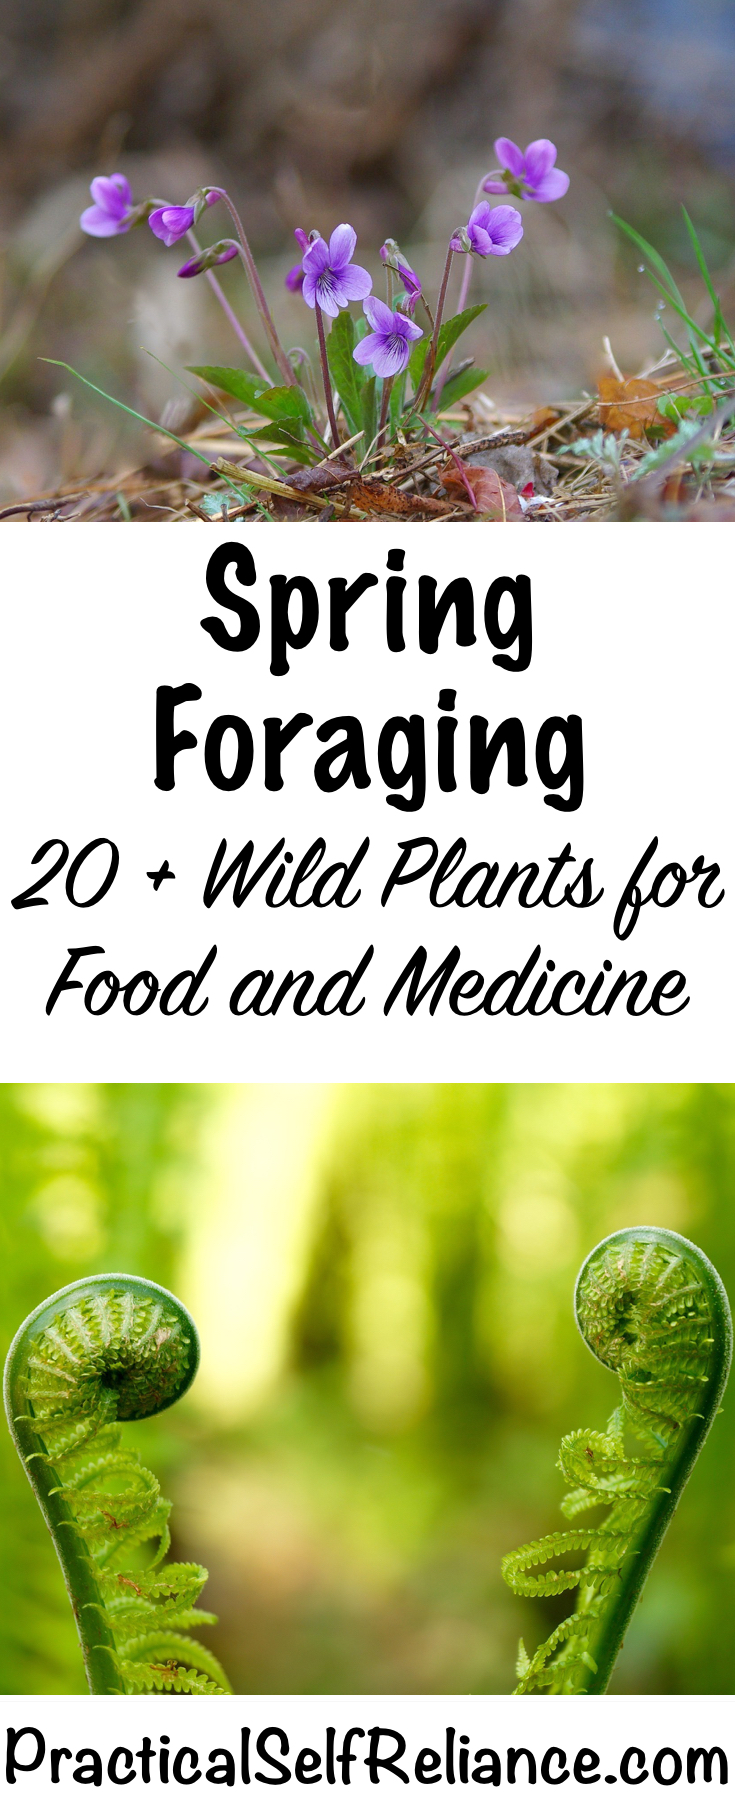 Spring Foraging ~ 20+ Wild Edibles to forage for food and medicine #foraging #wildfood #forage #selfsufficiency  #wildcrafting